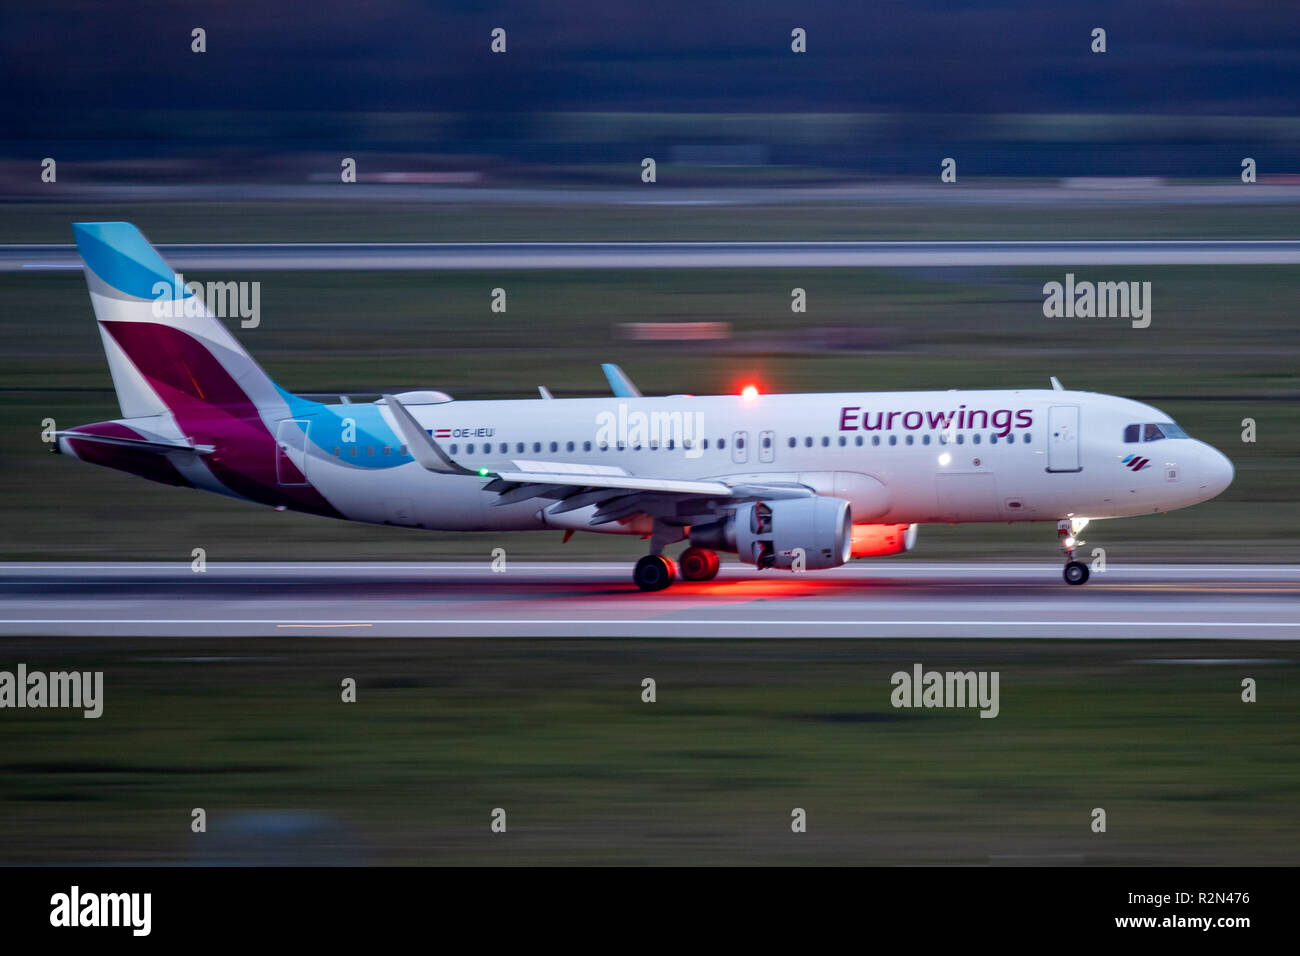 20 November 2018, North Rhine-Westphalia, Düsseldorf: An aircraft of the airline Eurowings lands at Düsseldorf Airport. In the wage dispute with the Lufthansa subsidiary, the Verdi union has called on cabin crews to go on warning strike early in the morning. The flight attendants of the airlines Eurowings and LGW are to stop their work between 4.30 am and 12.30 pm. 18 flights from Düsseldorf were affected and cancelled. Photo: Marcel Kusch/dpa - Stock Image